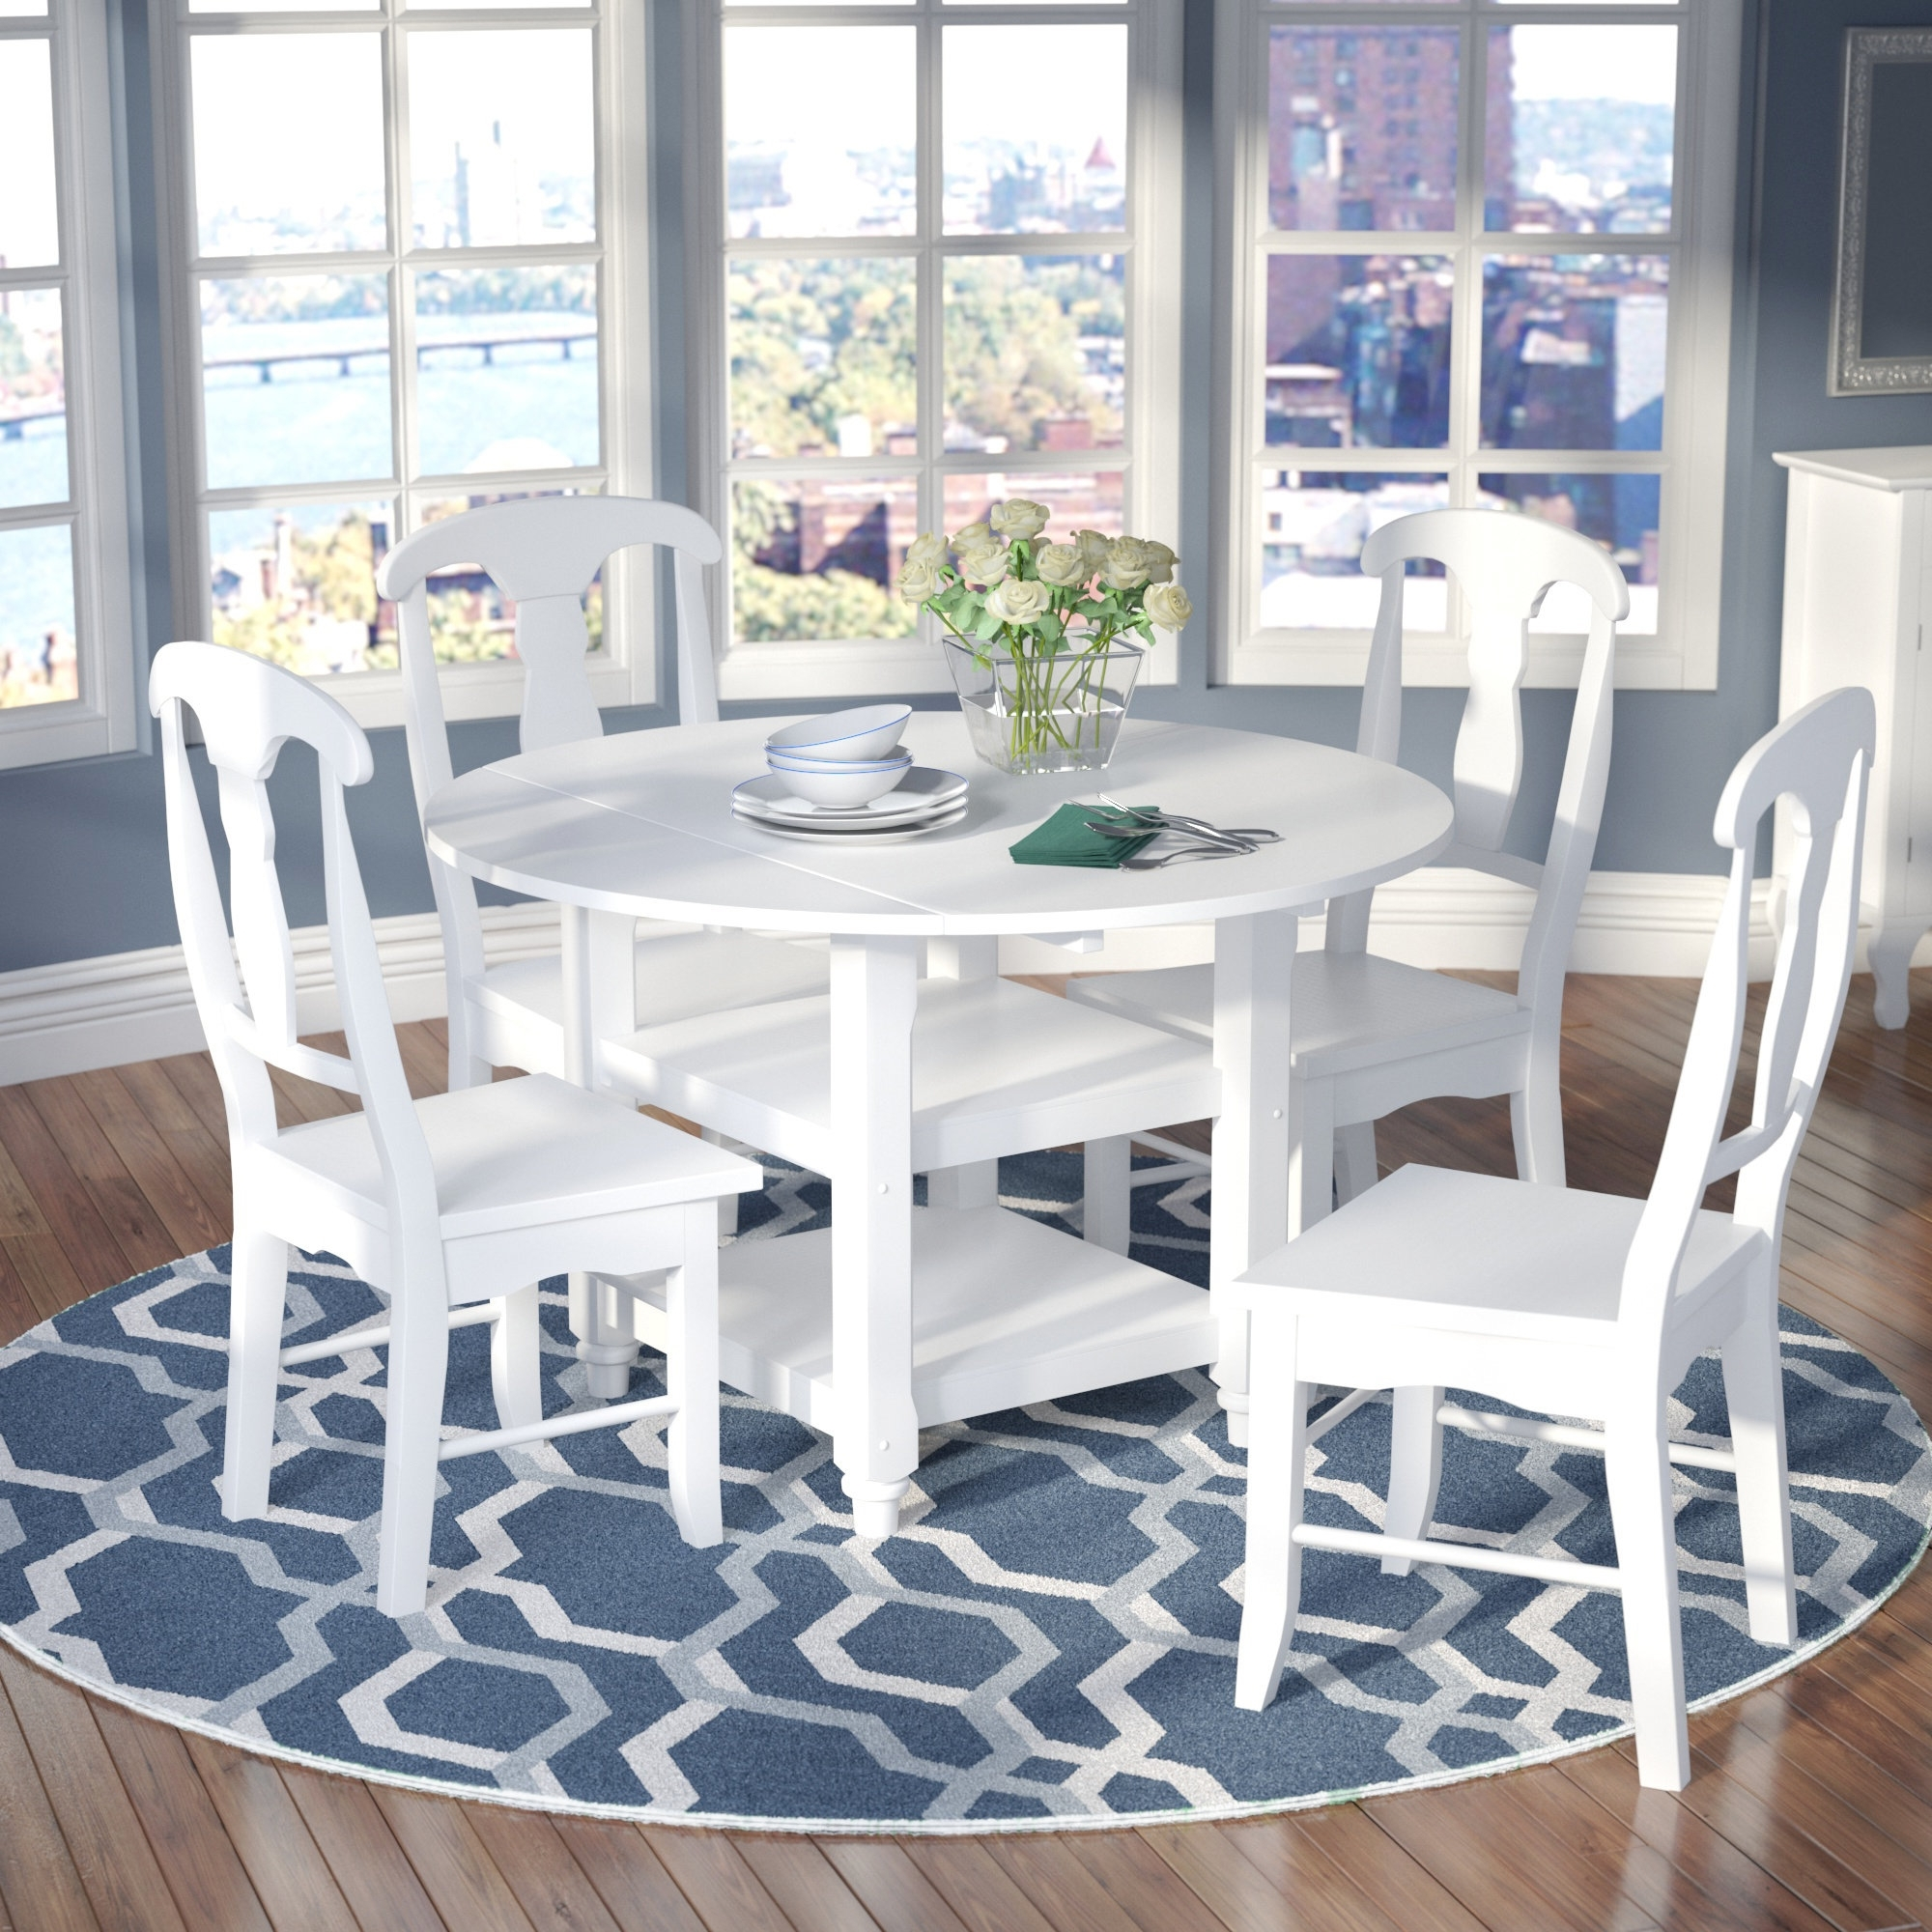 Jaxon 5 Piece Extension Round Dining Sets With Wood Chairs For Preferred Alcott Hill Harwick 5 Piece Dining Set & Reviews (View 14 of 25)